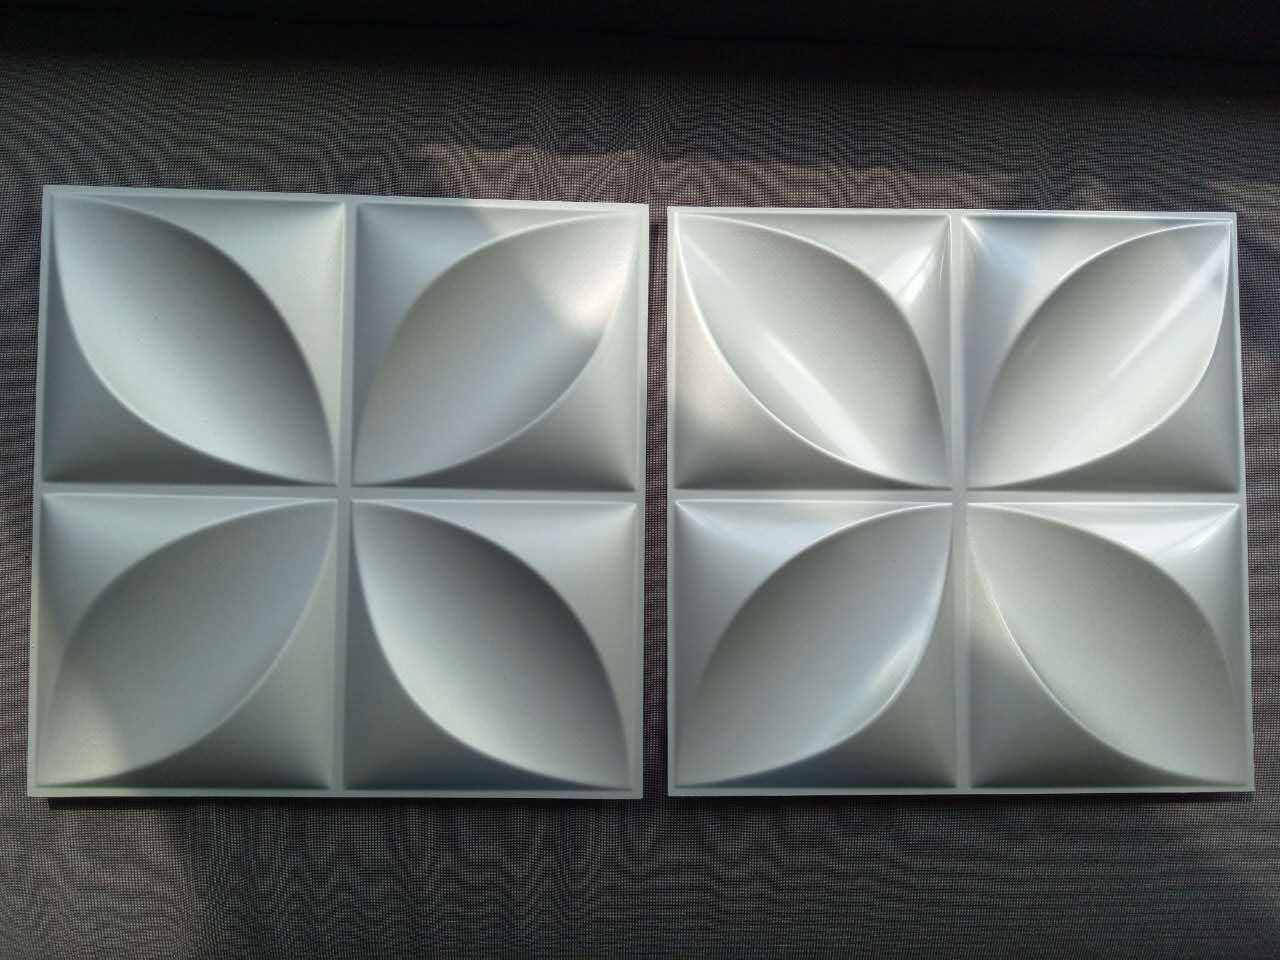 Pvc 3d Wall Panel 1 Beautiful Color 3d Pvc Wall Panel 2 Washable And Waterproof 3 Suitable For Both Indoor Pvc Wall Panels 3d Wall Panels Wall Paneling